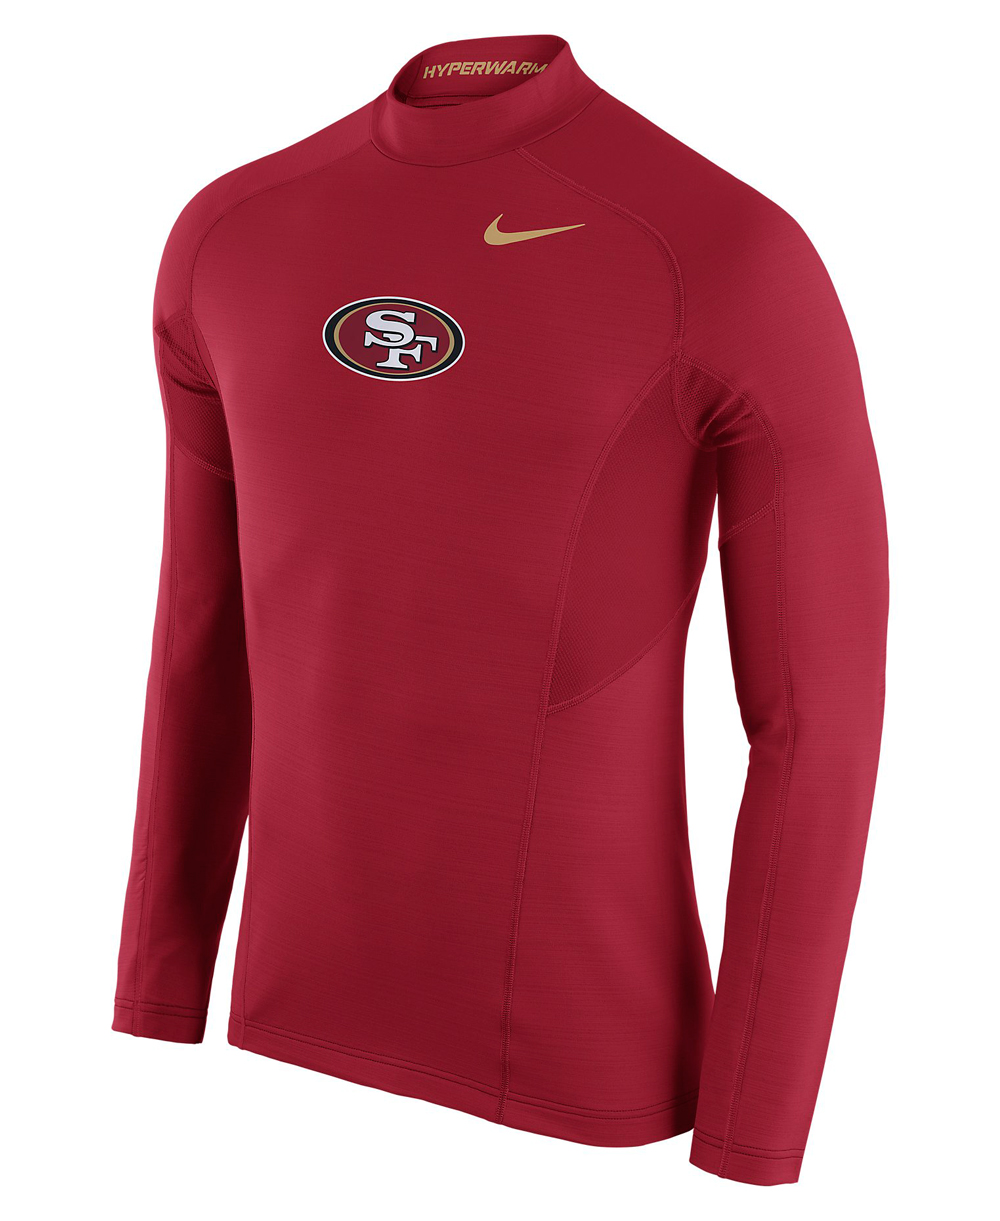 Shirt Kompressions Pro 49ers Fitted Hyperwarm Herren Max Langarm NFL eH92IWYED